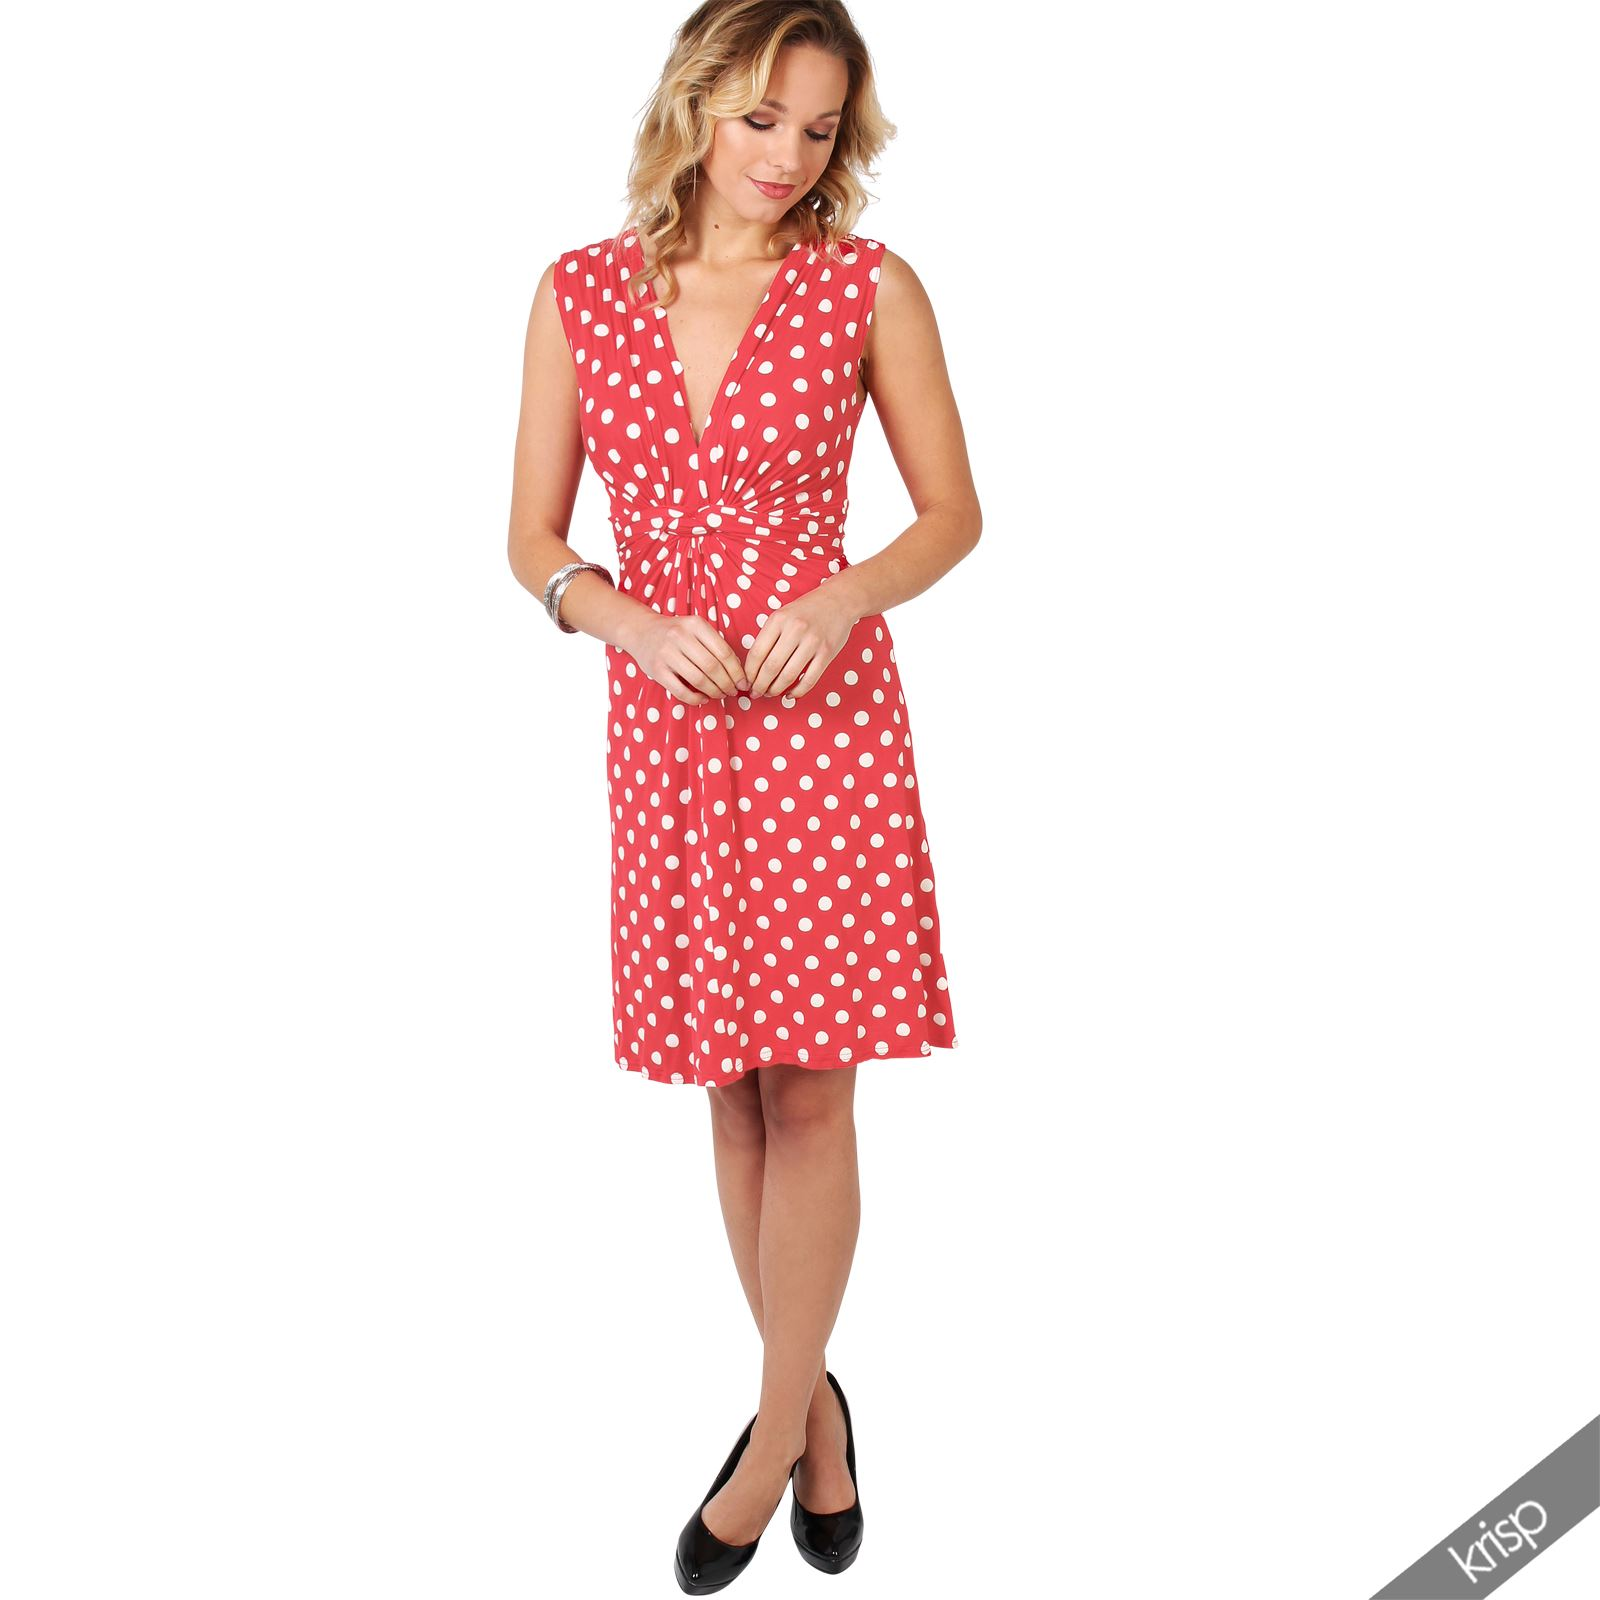 Womens-Polka-Dot-Retro-Dress-Pleated-Skirt-Wrap-Mini-V-Neck-Top-Swing-Party thumbnail 9